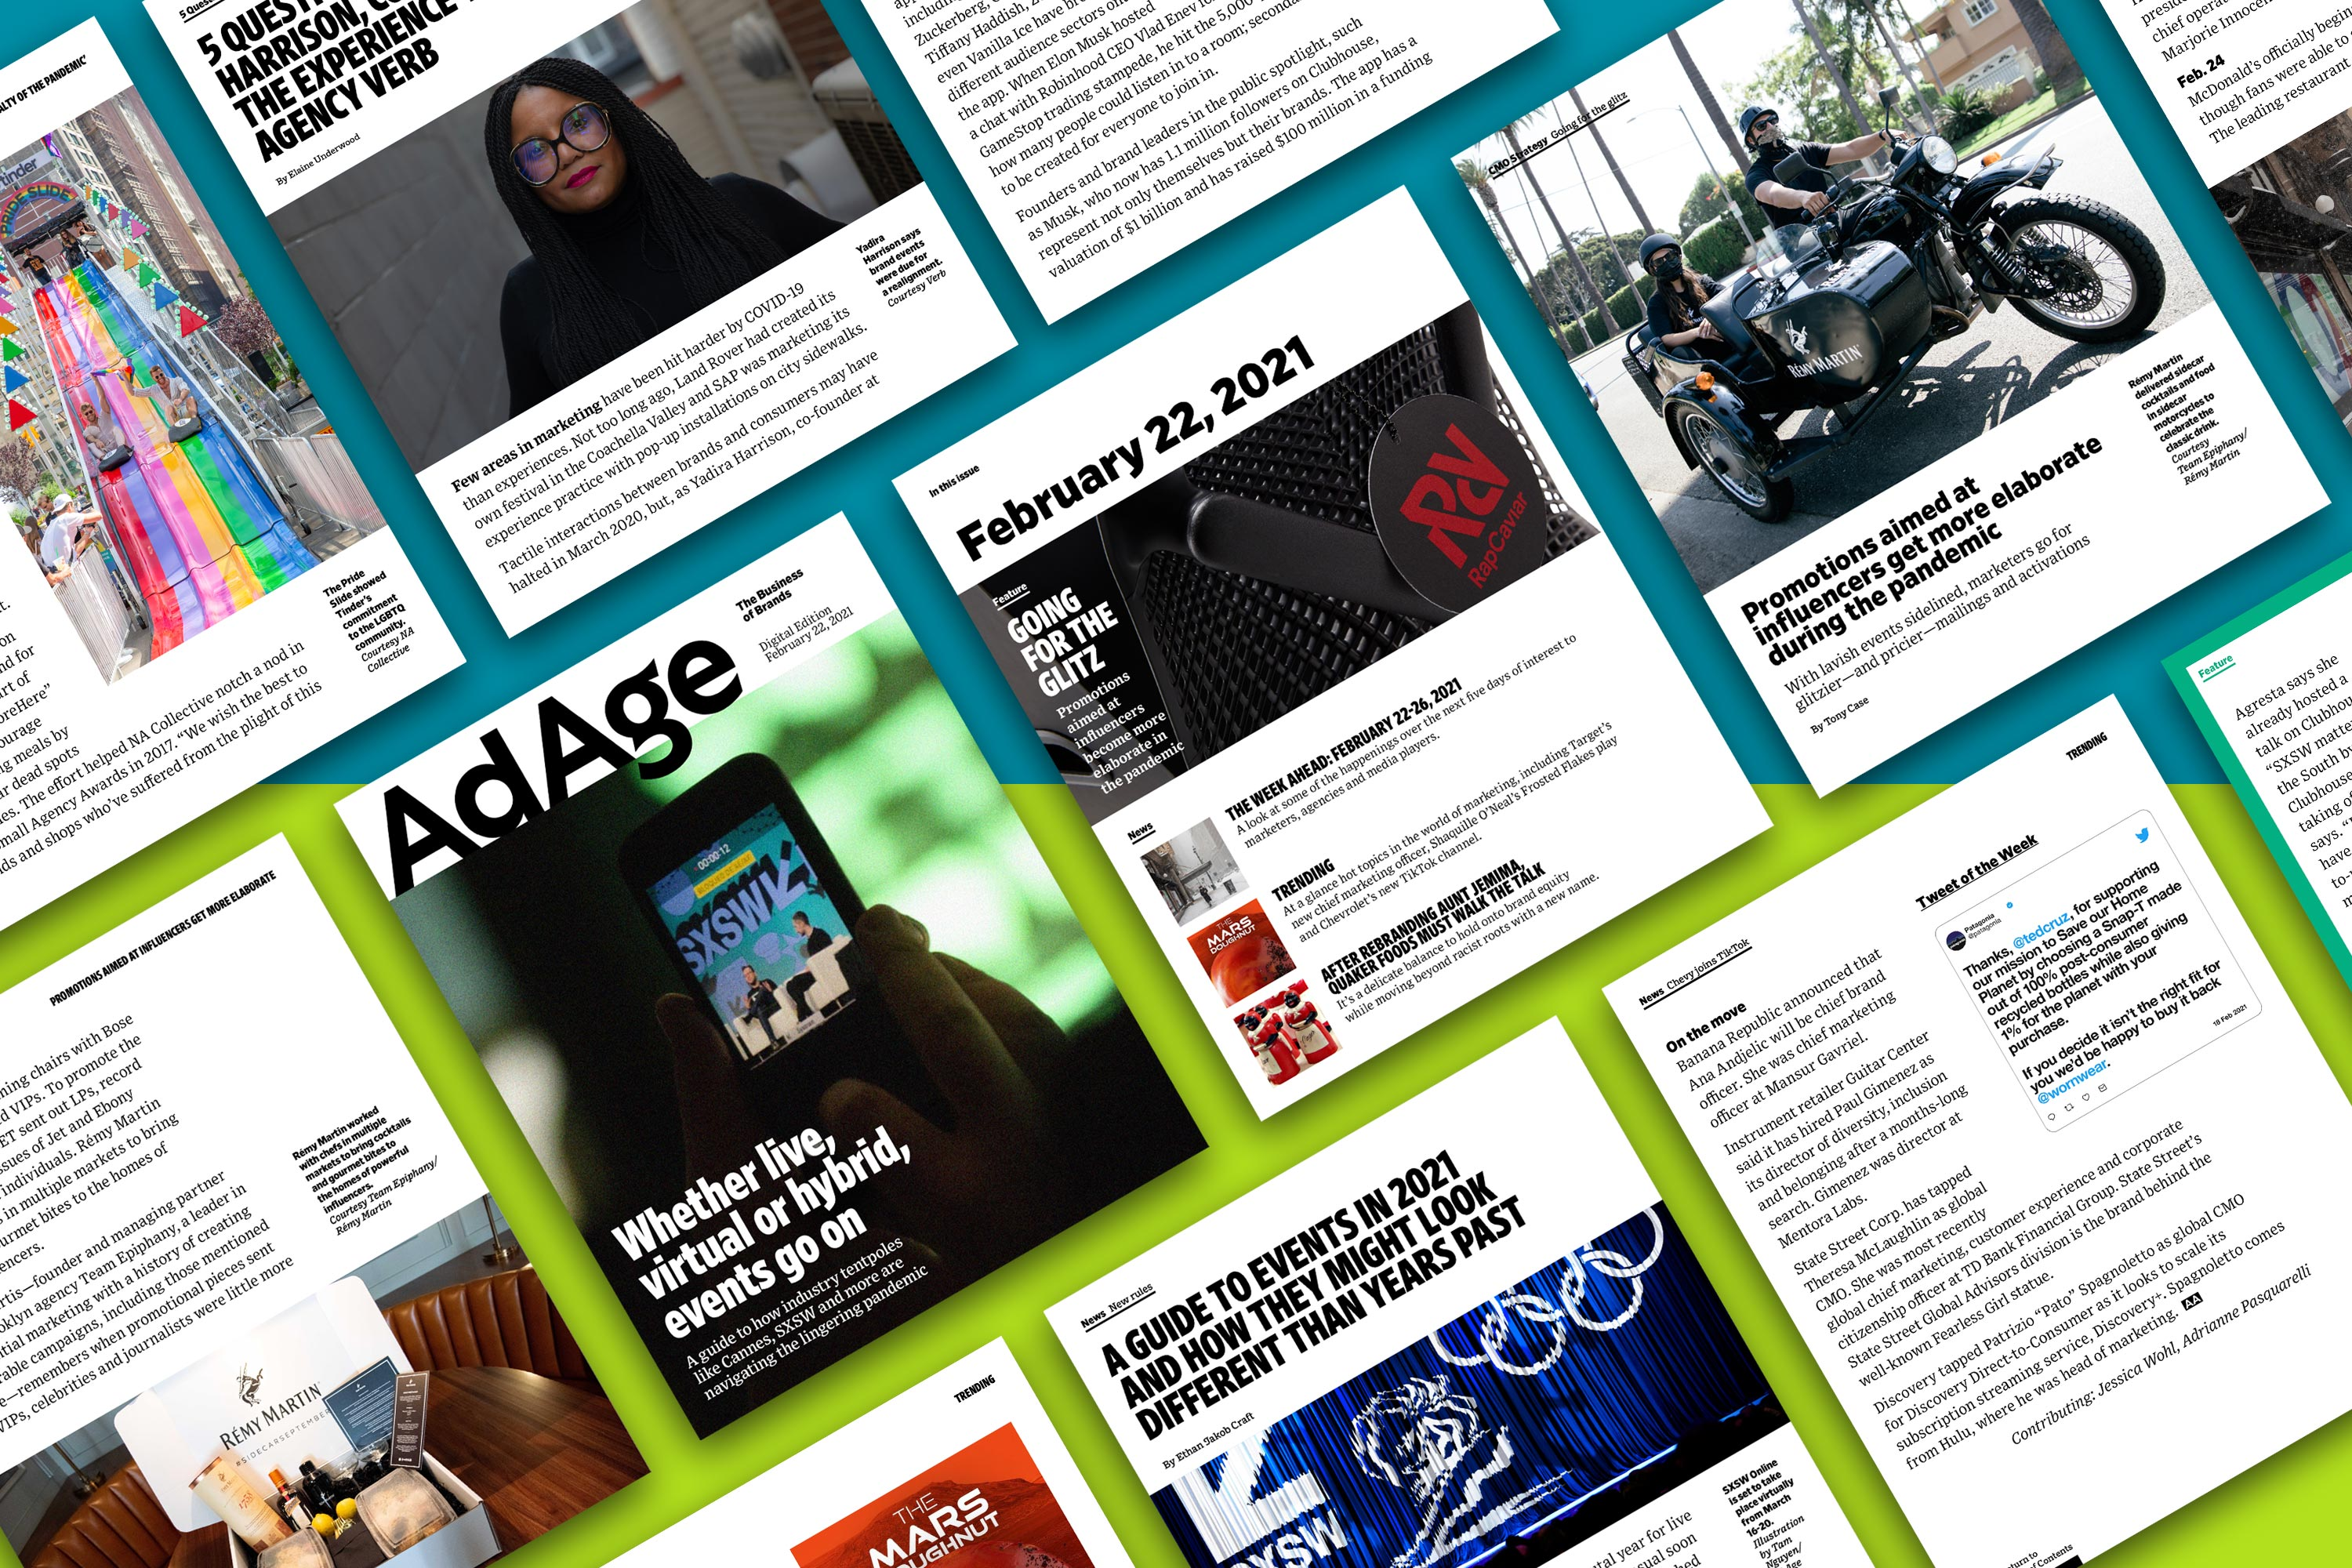 A guide to industry events in the lingering pandemic: Ad Age Digital Edition